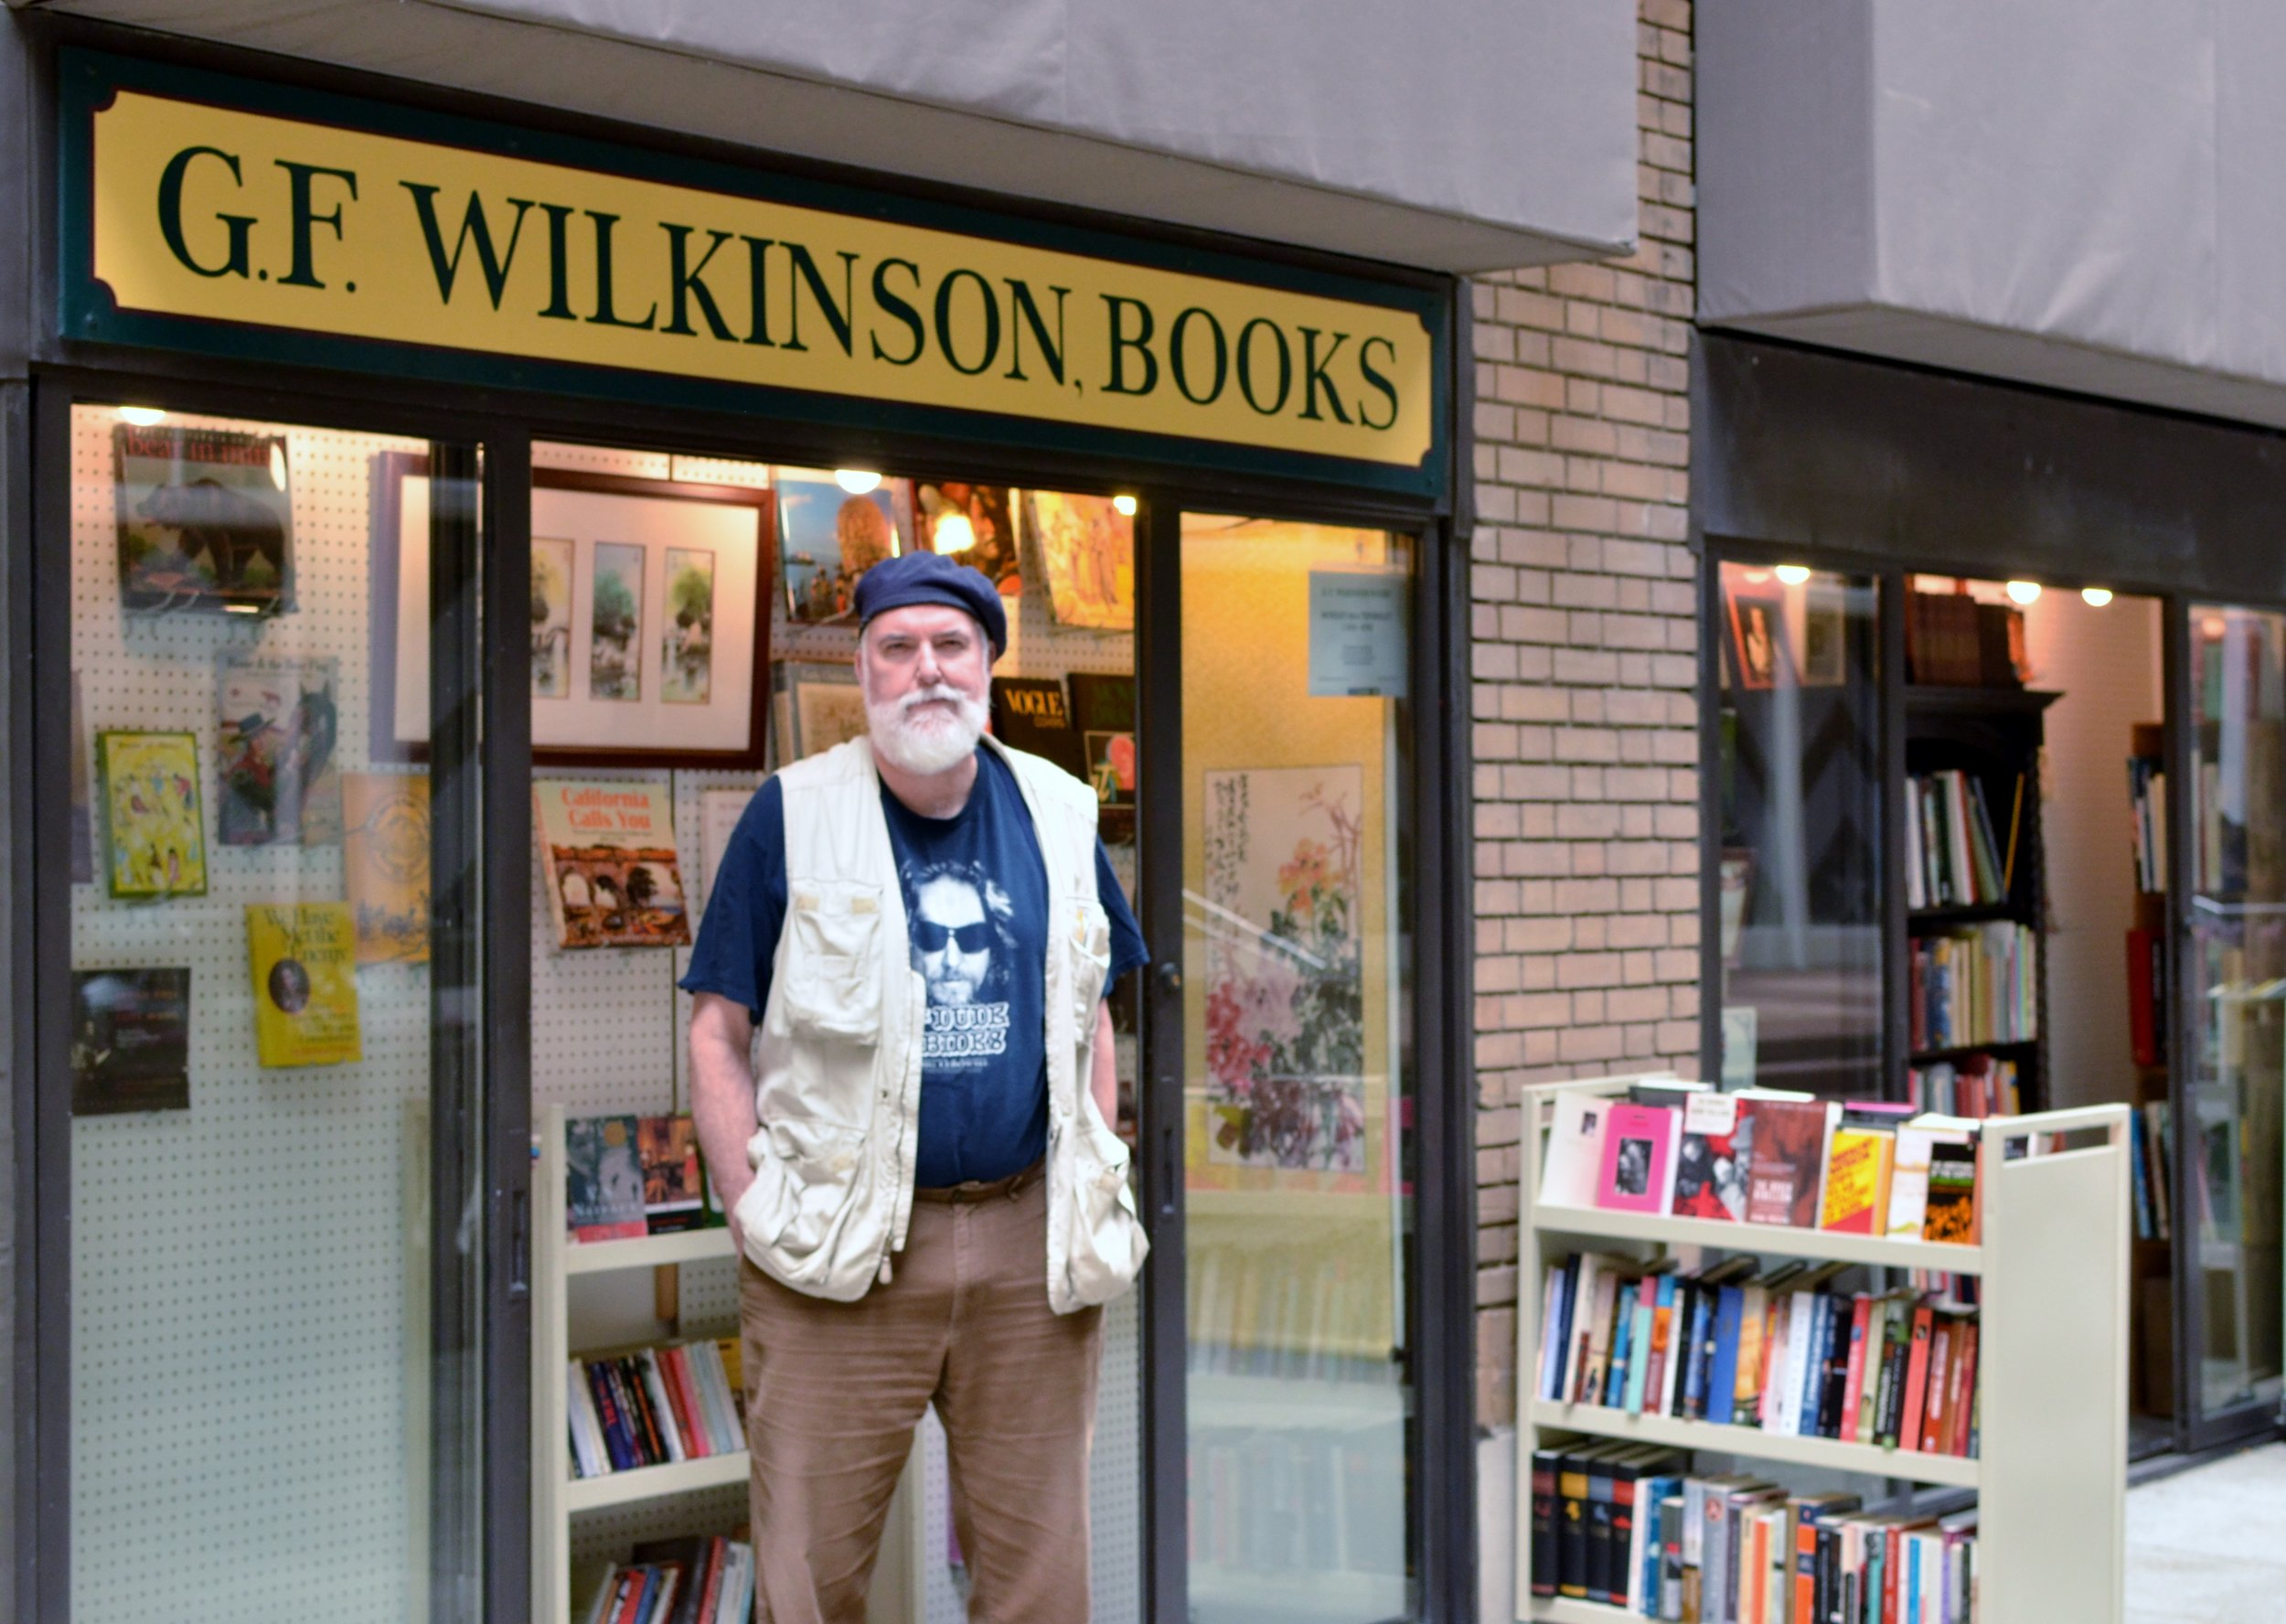 The owner of G.F. Wilkinson books loves that people can casually browse his collection on their smoke break.